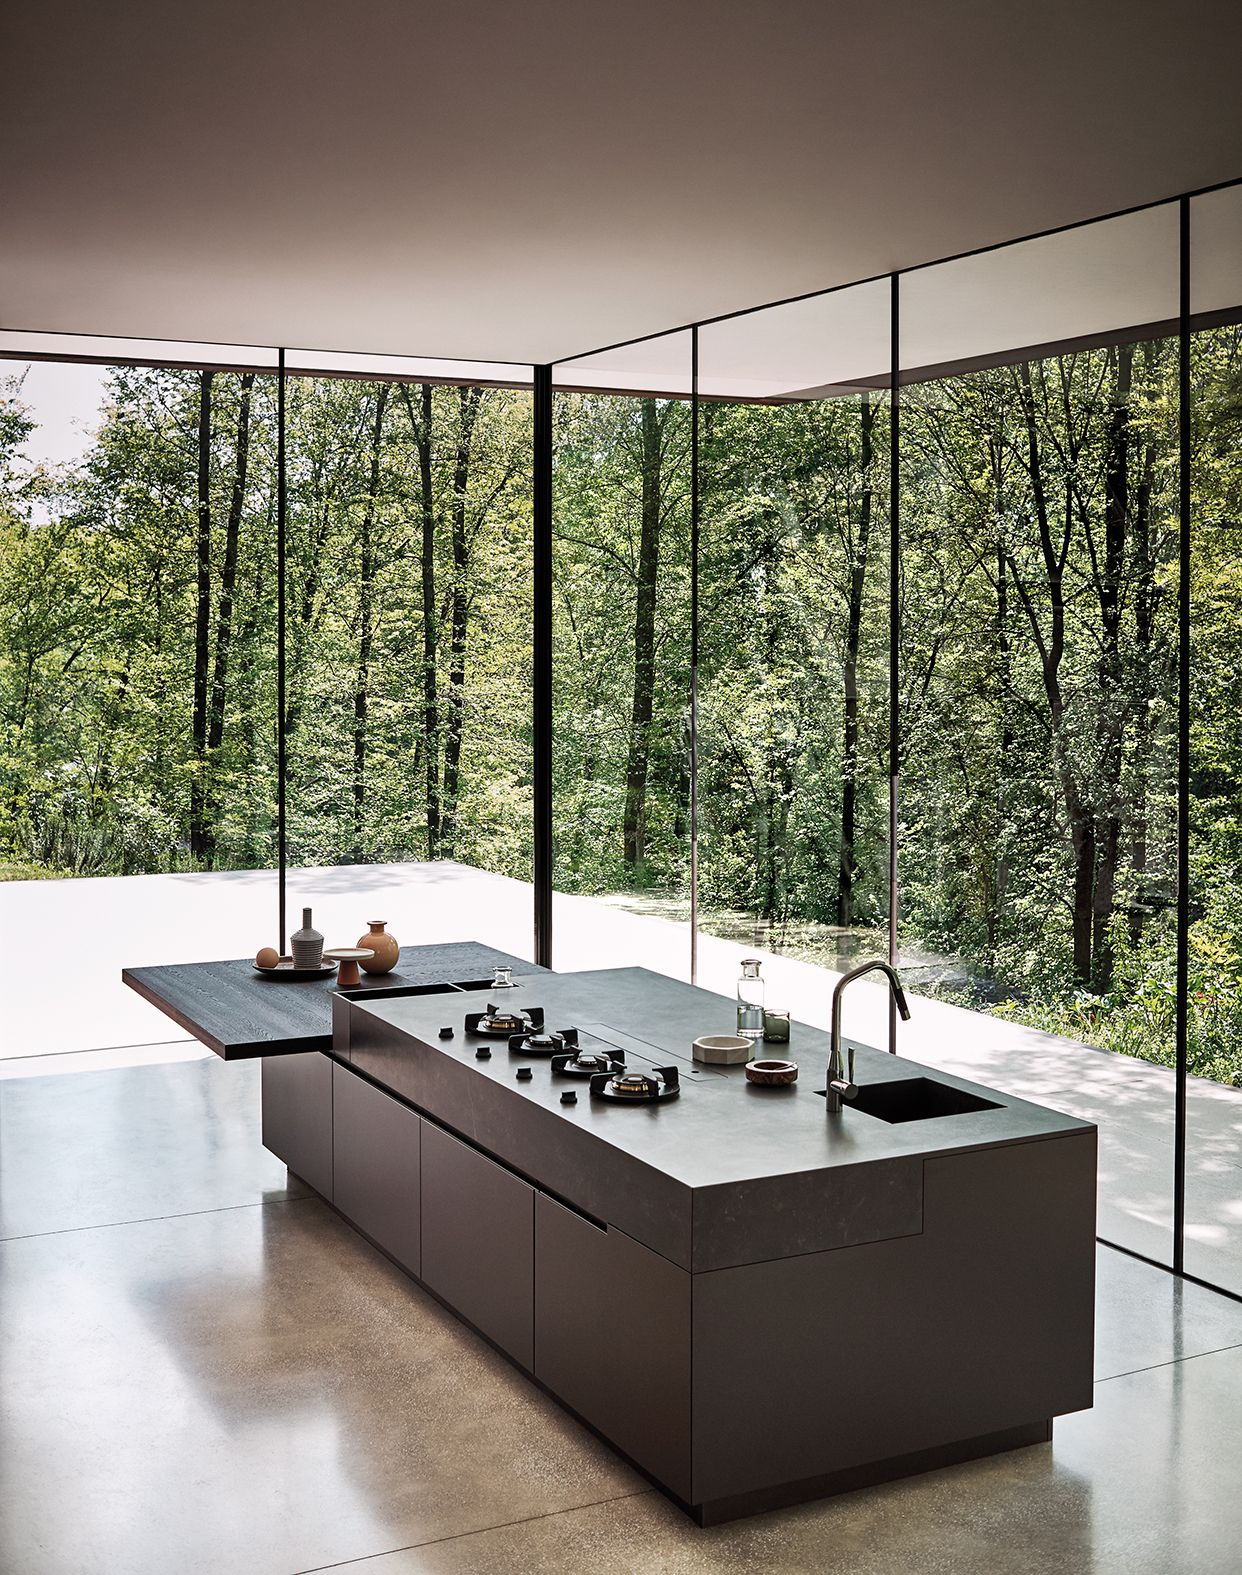 Maxima 2.2 by Cesar | Kitchen Inspiration / Designs | Pinterest ...